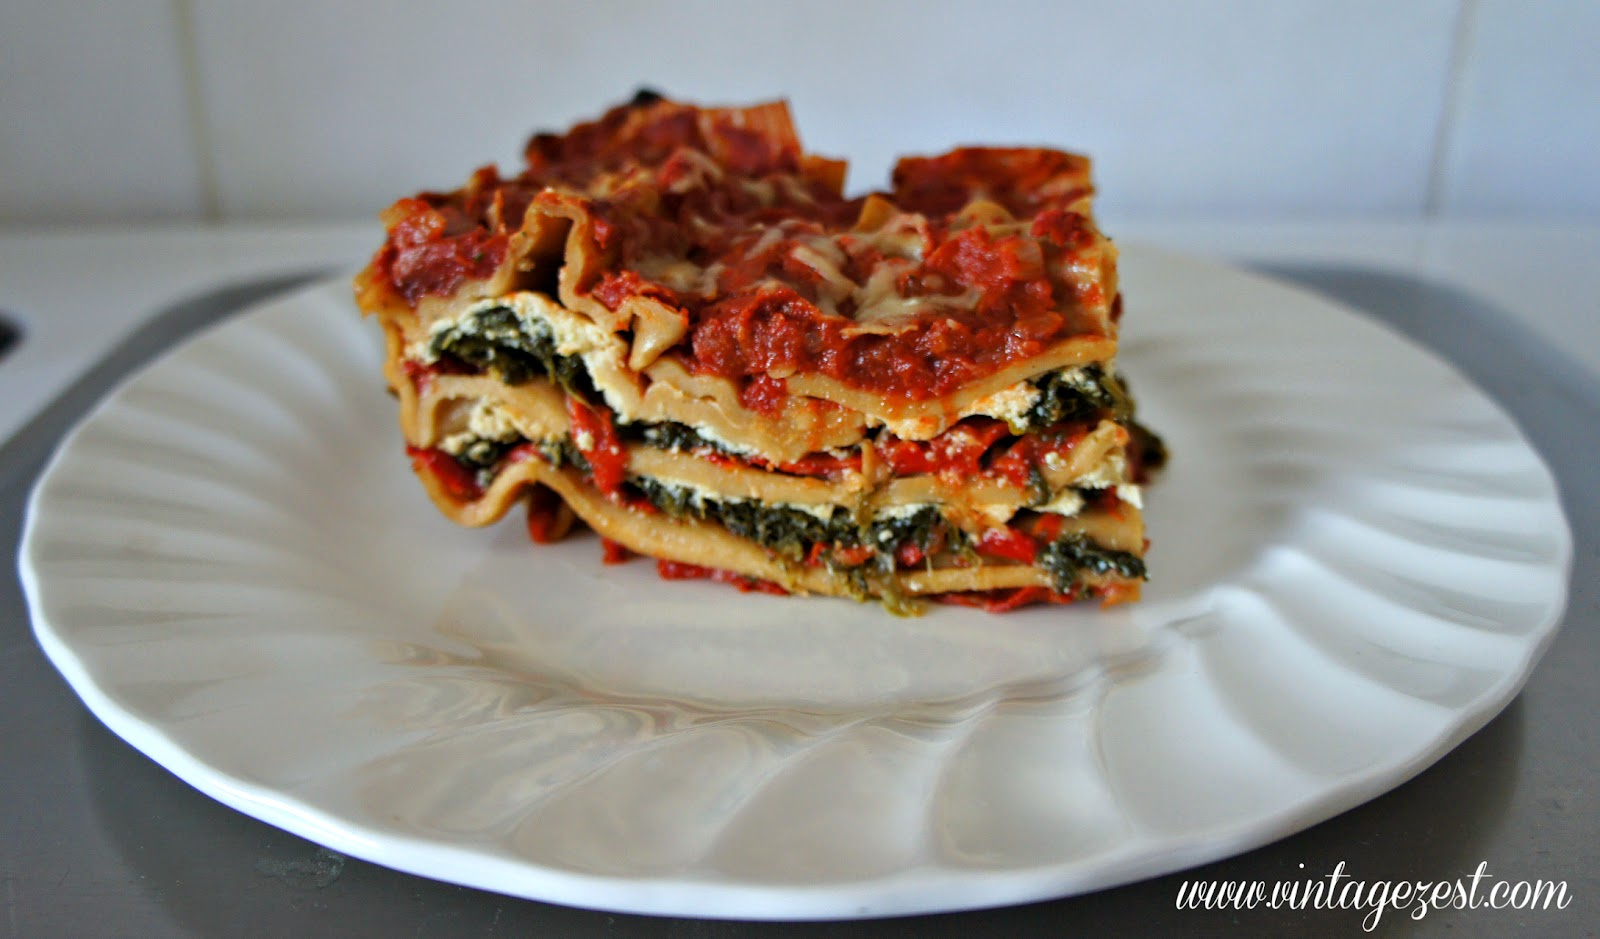 Spinach & Roasted Red Pepper Lasagna on Diane's Vintage Zest!